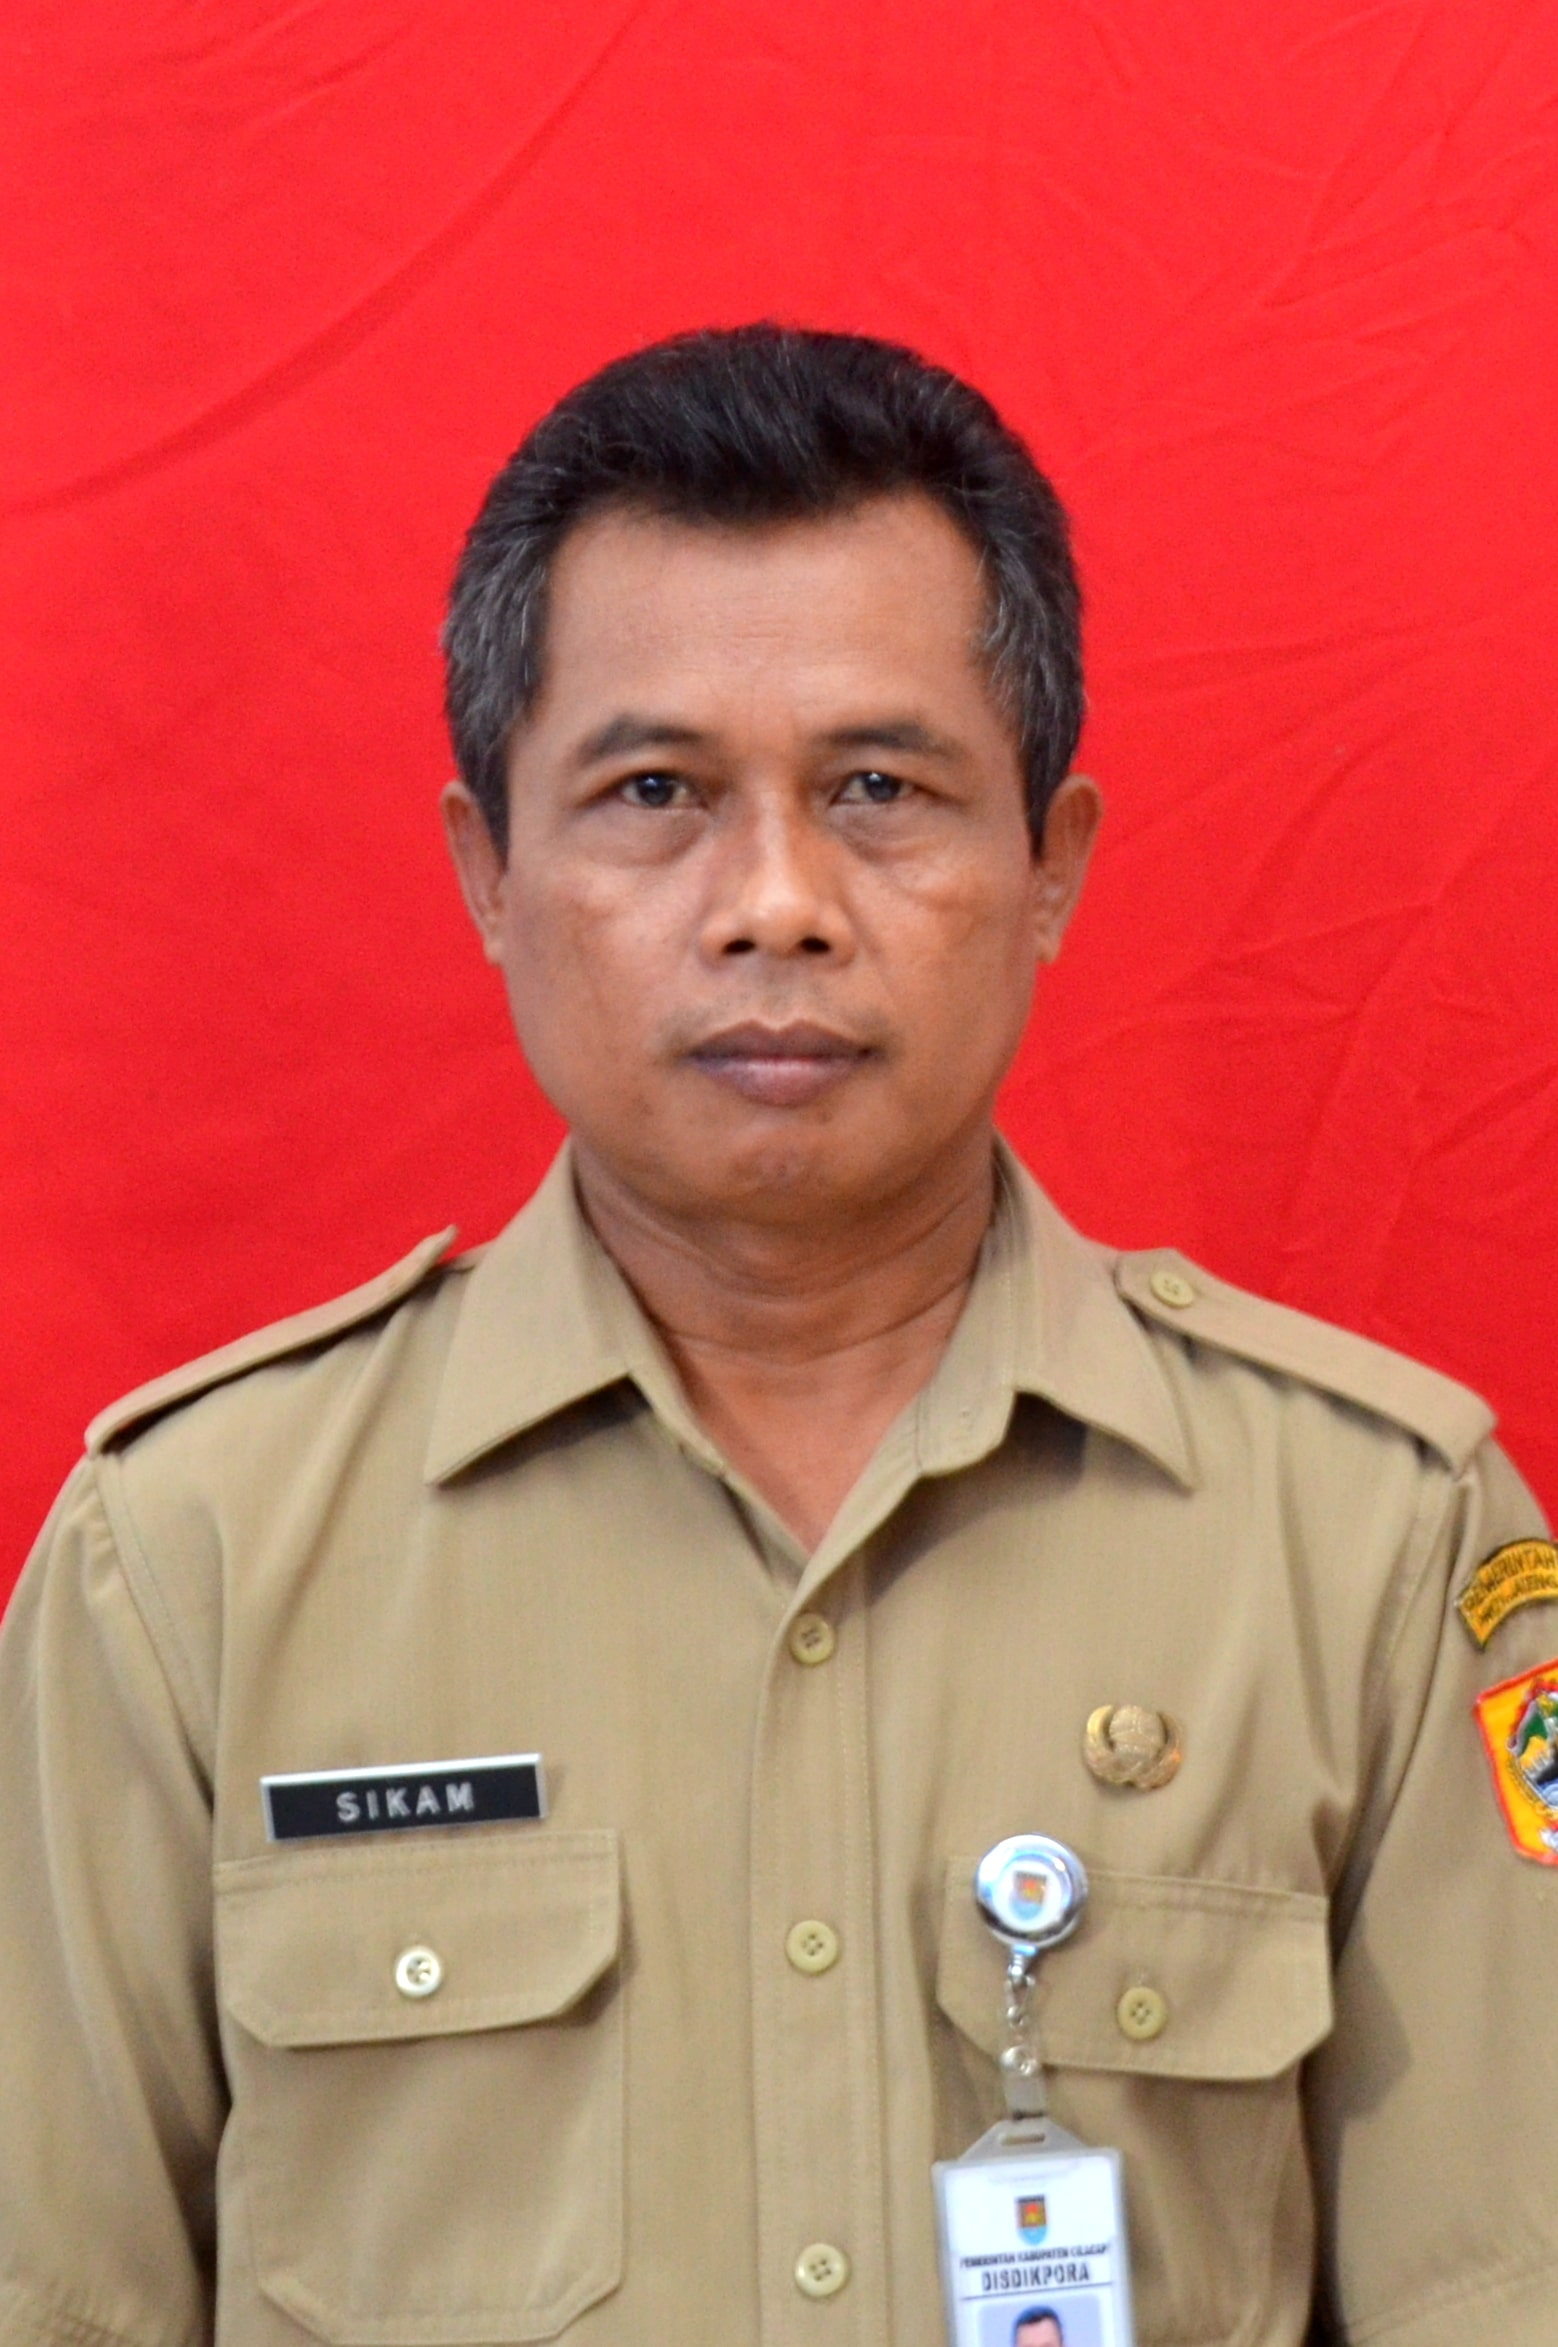 Sikam, S.Pd